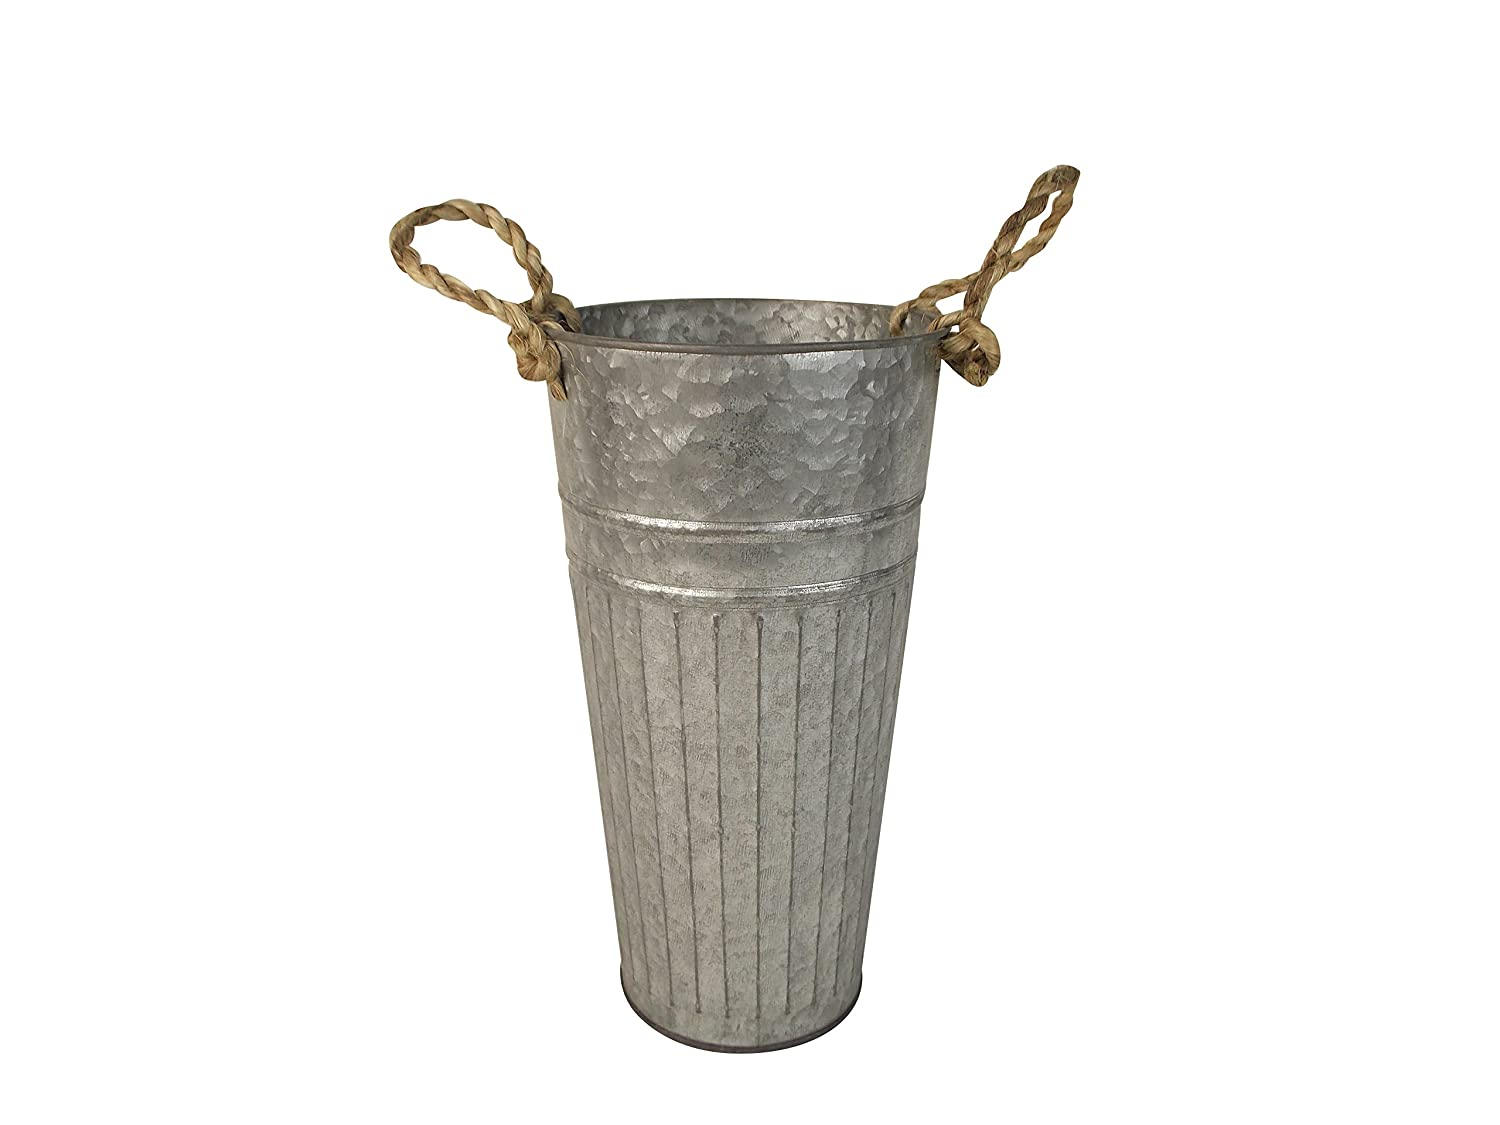 Craft Outlet 5.75-Inch X 5.75-Inch X 11-Inch Tin Bucket with Burlap Handle Craft Outlet Inc T1368